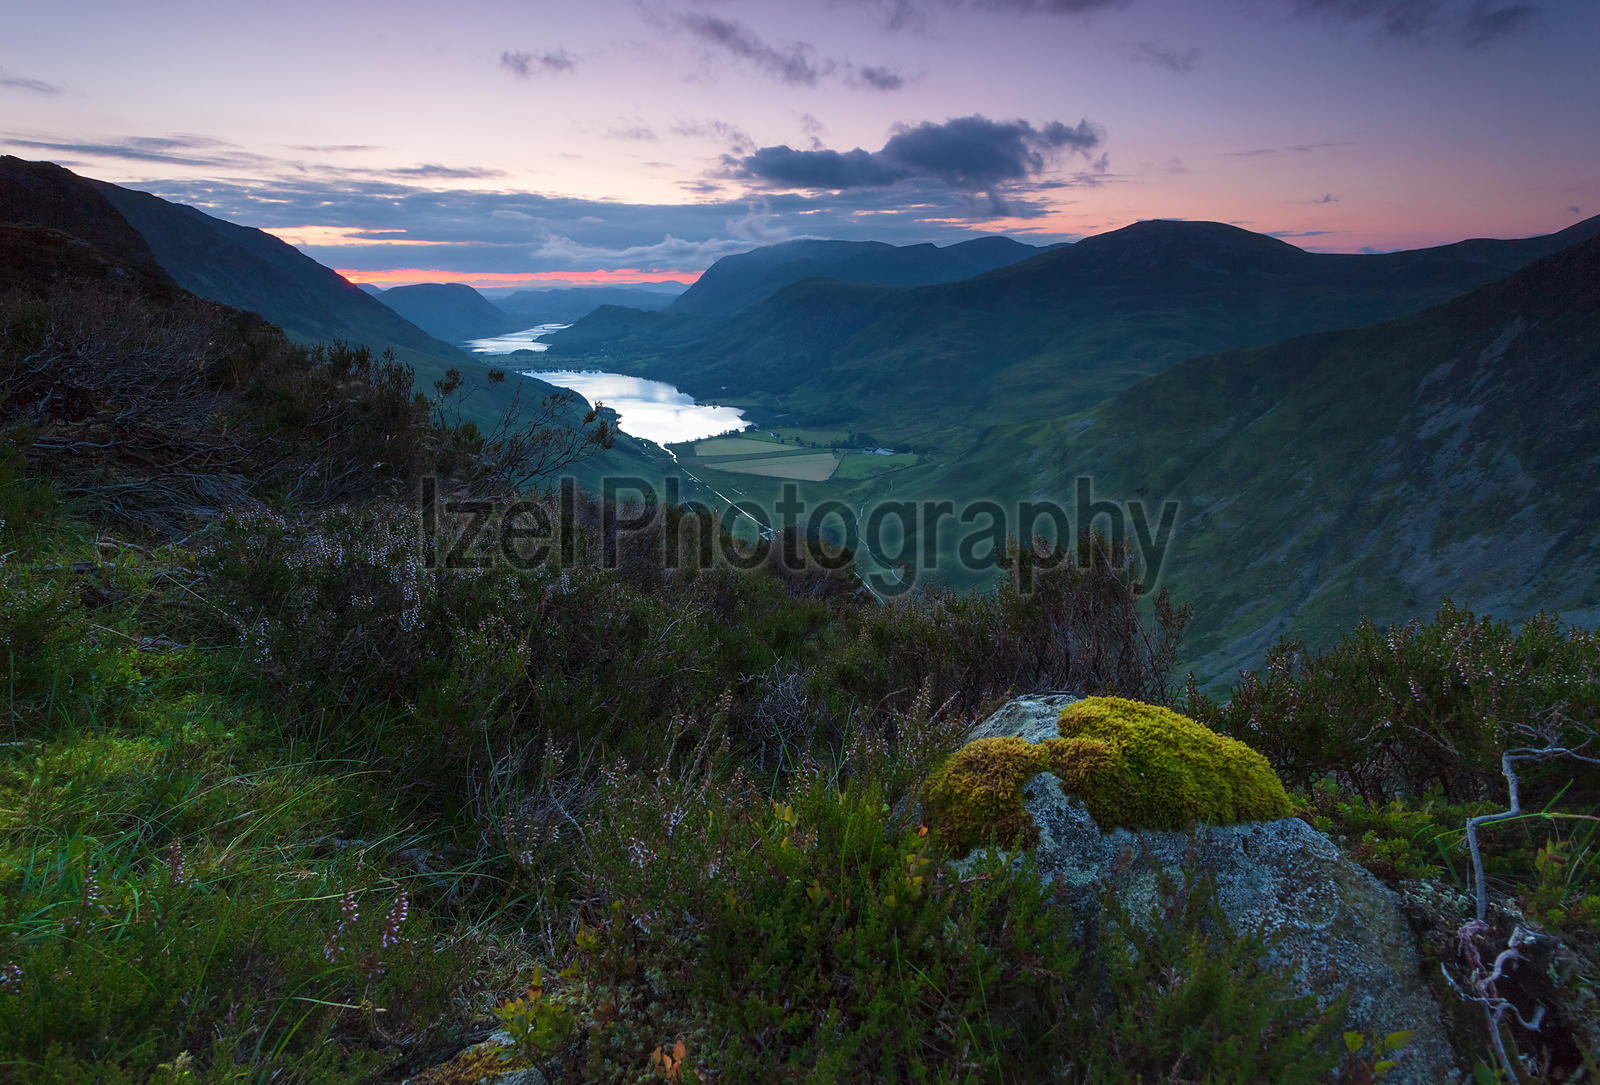 Lake Buttermere after sunset from the summit of Haystacks in the Lake District, UK.